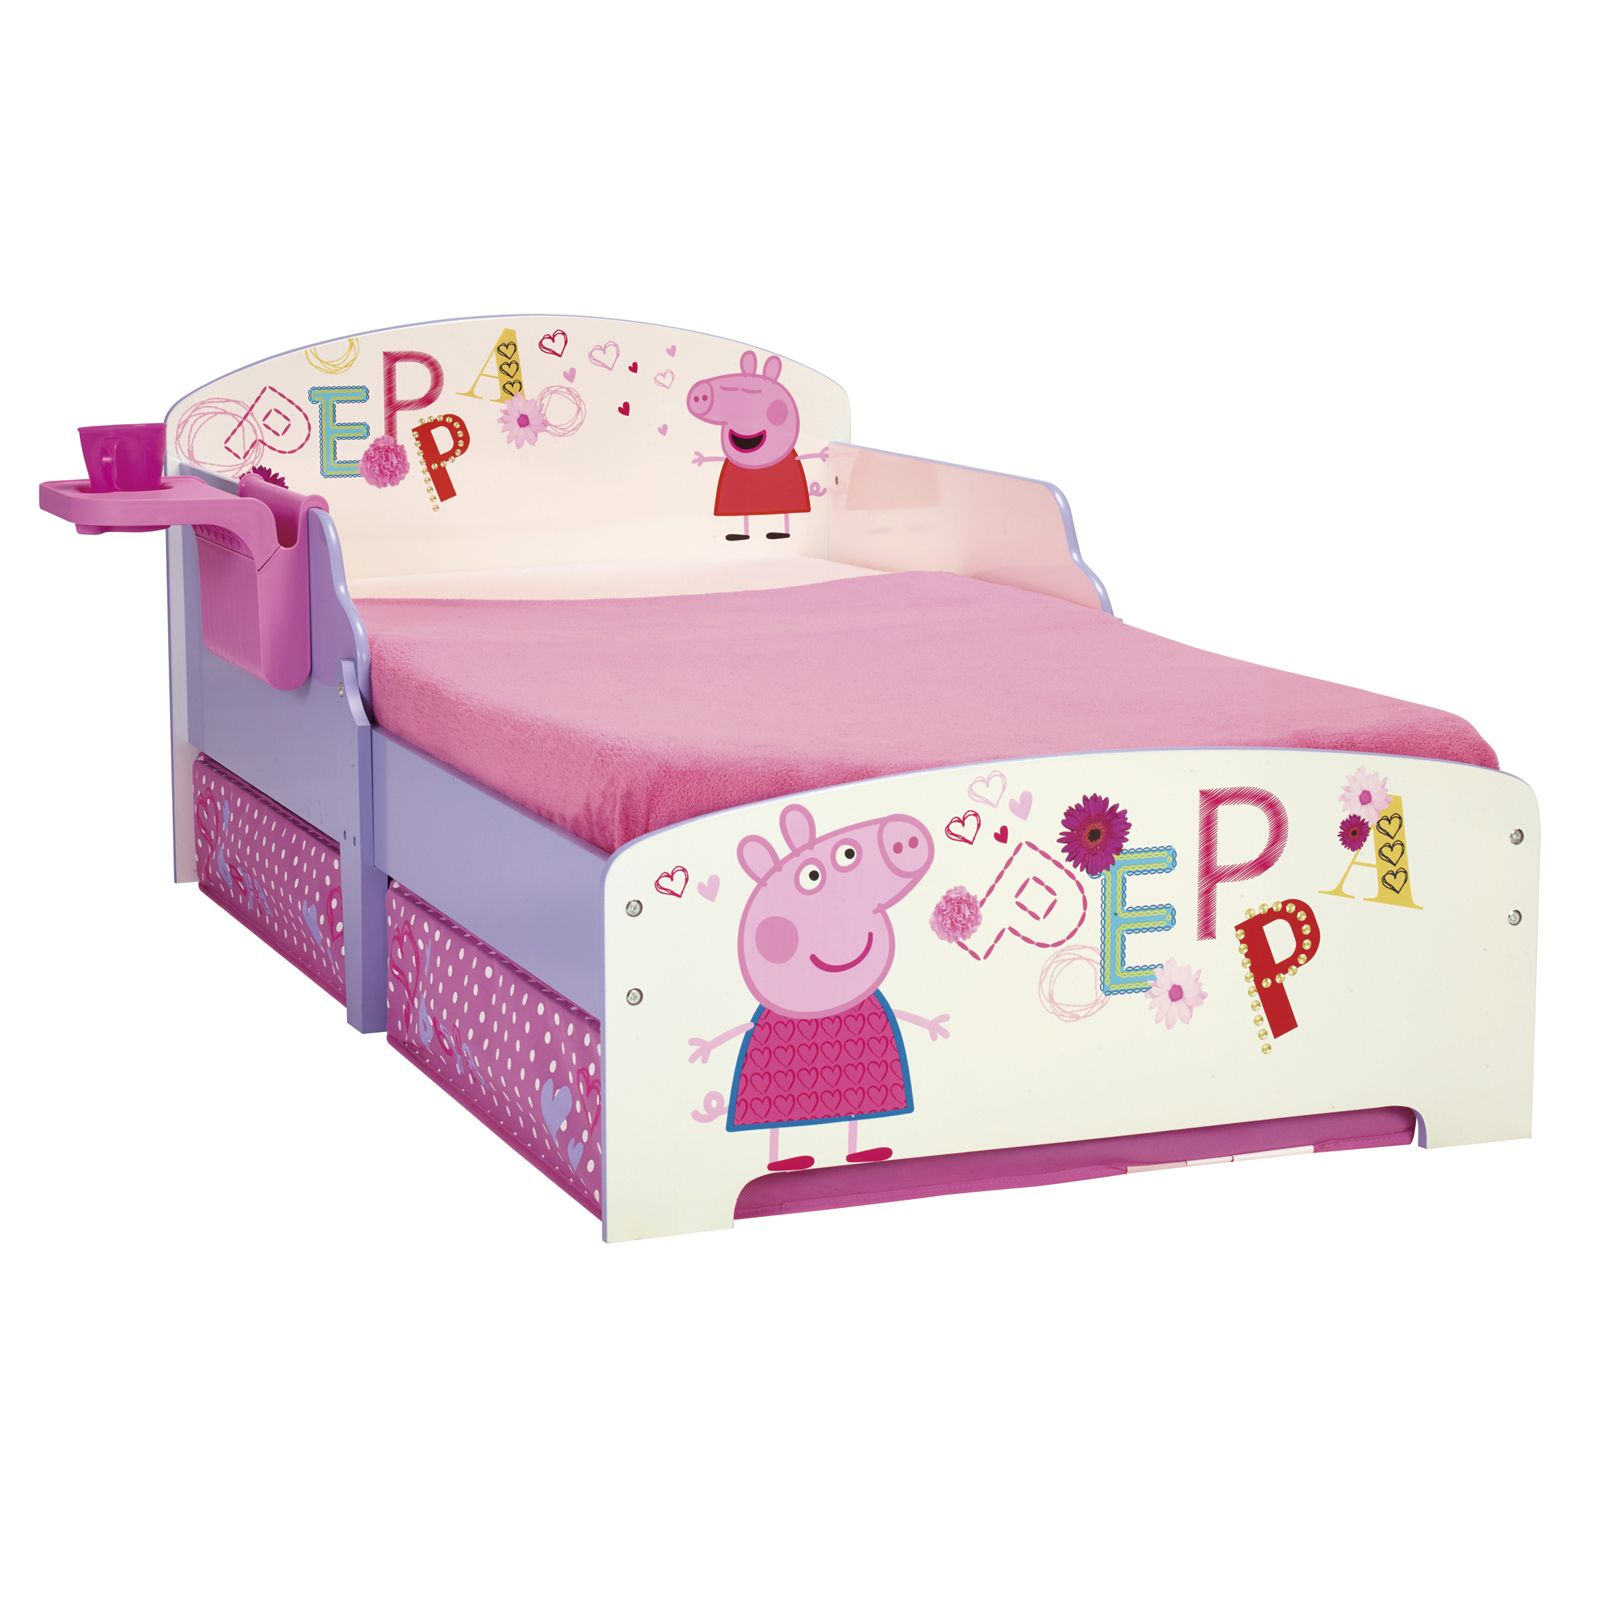 CHARACTER DISNEY JUNIOR TODDLER BEDS WITH STORAGE